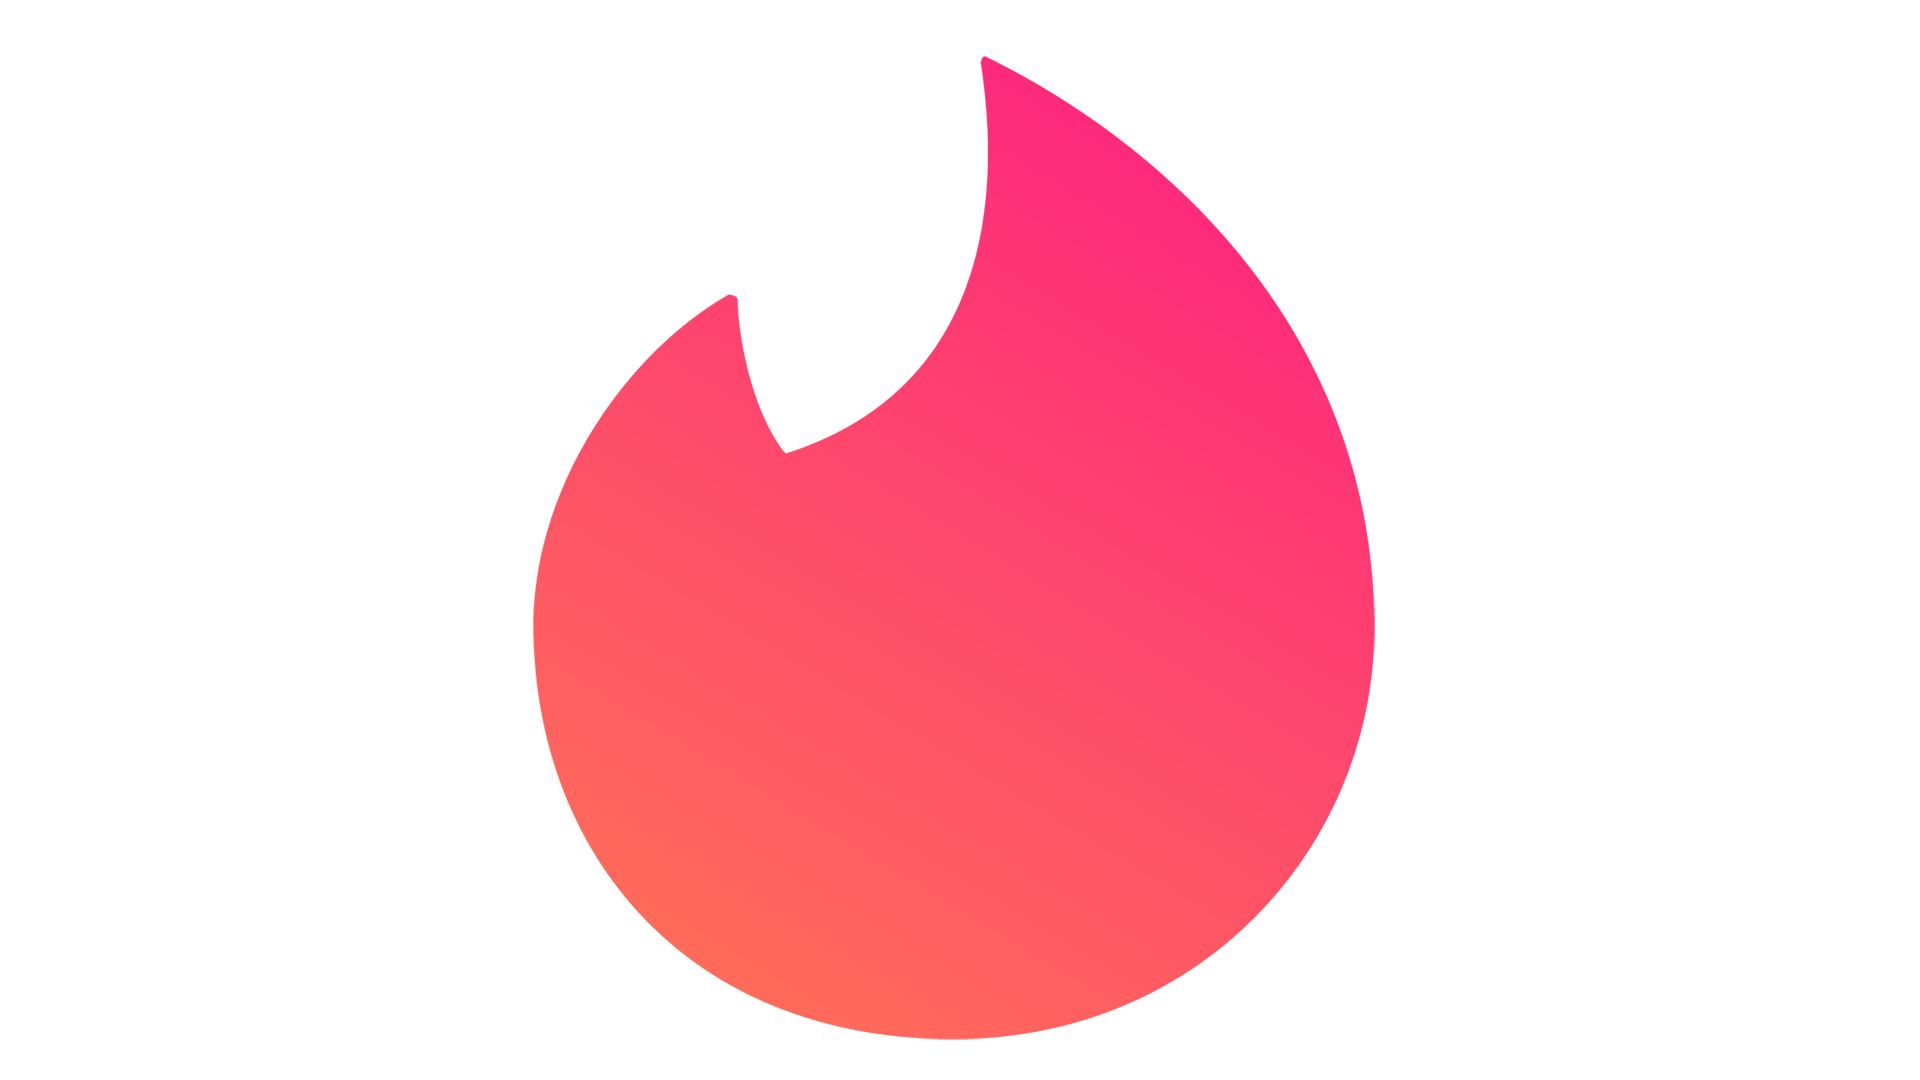 Meaning Tinder logo and symbol.